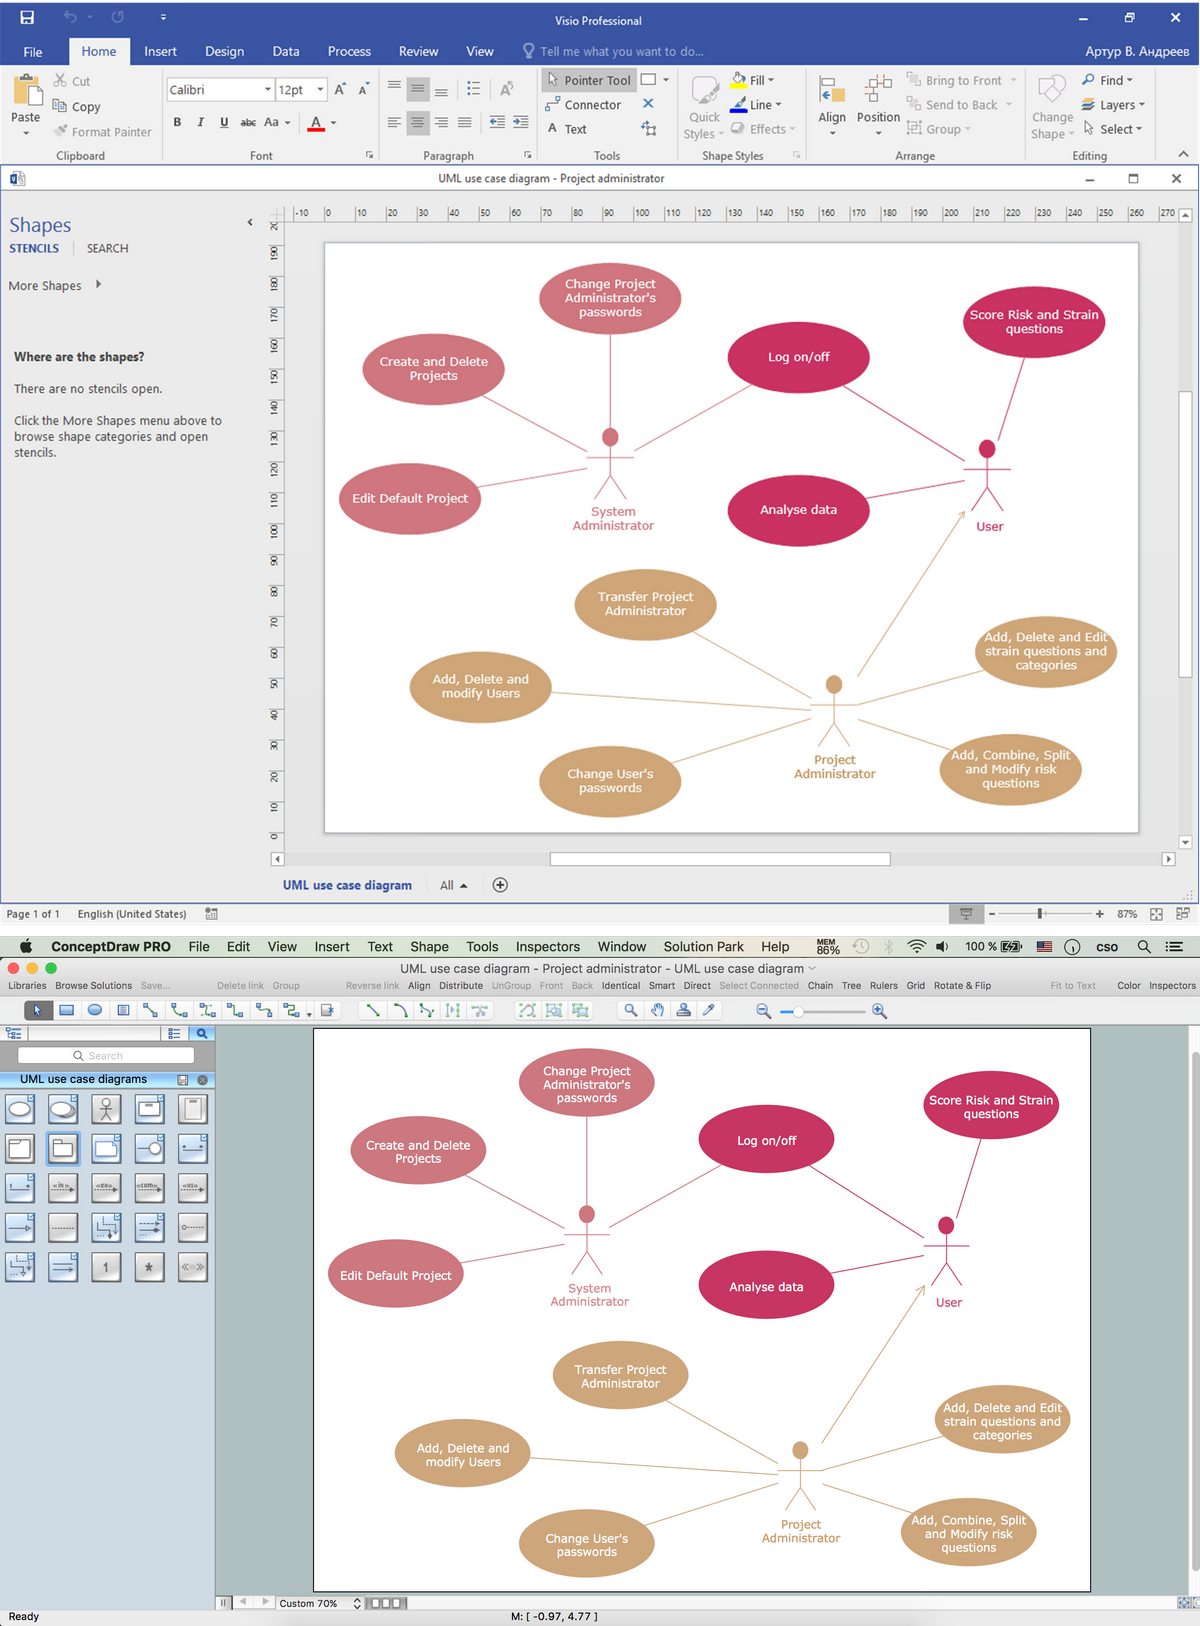 Example of document conversion from Visio to ConceptDraw